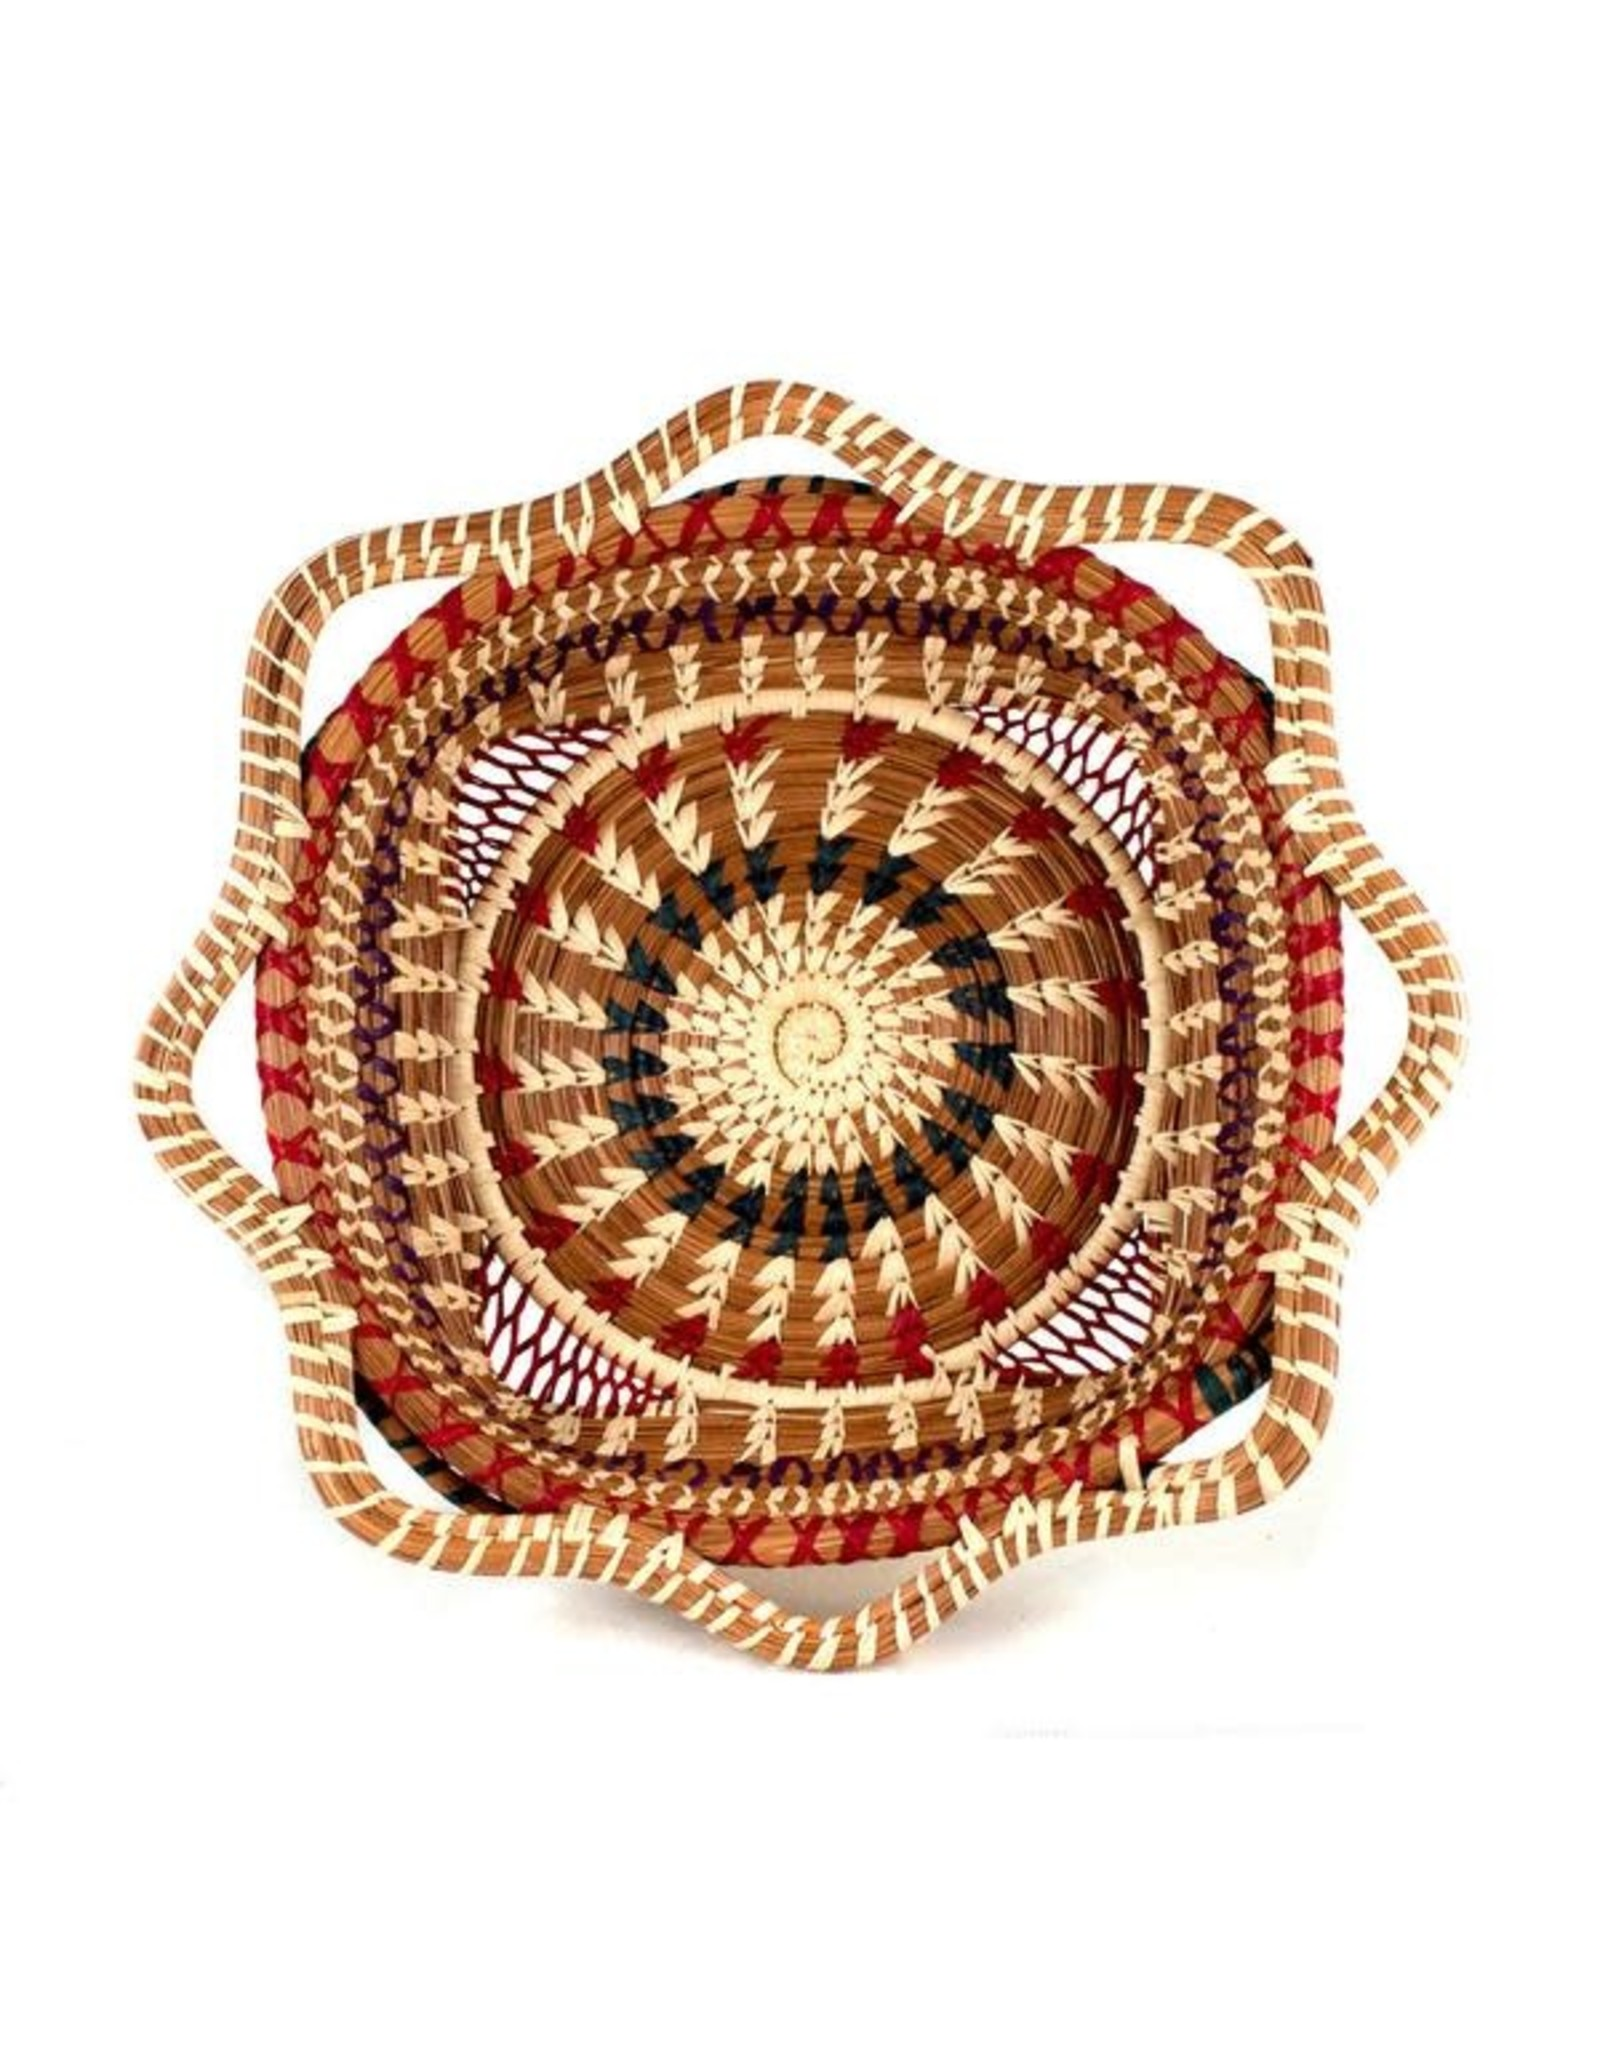 Butterfly Basket, Square w/ Scalloped Edges, Guatemala